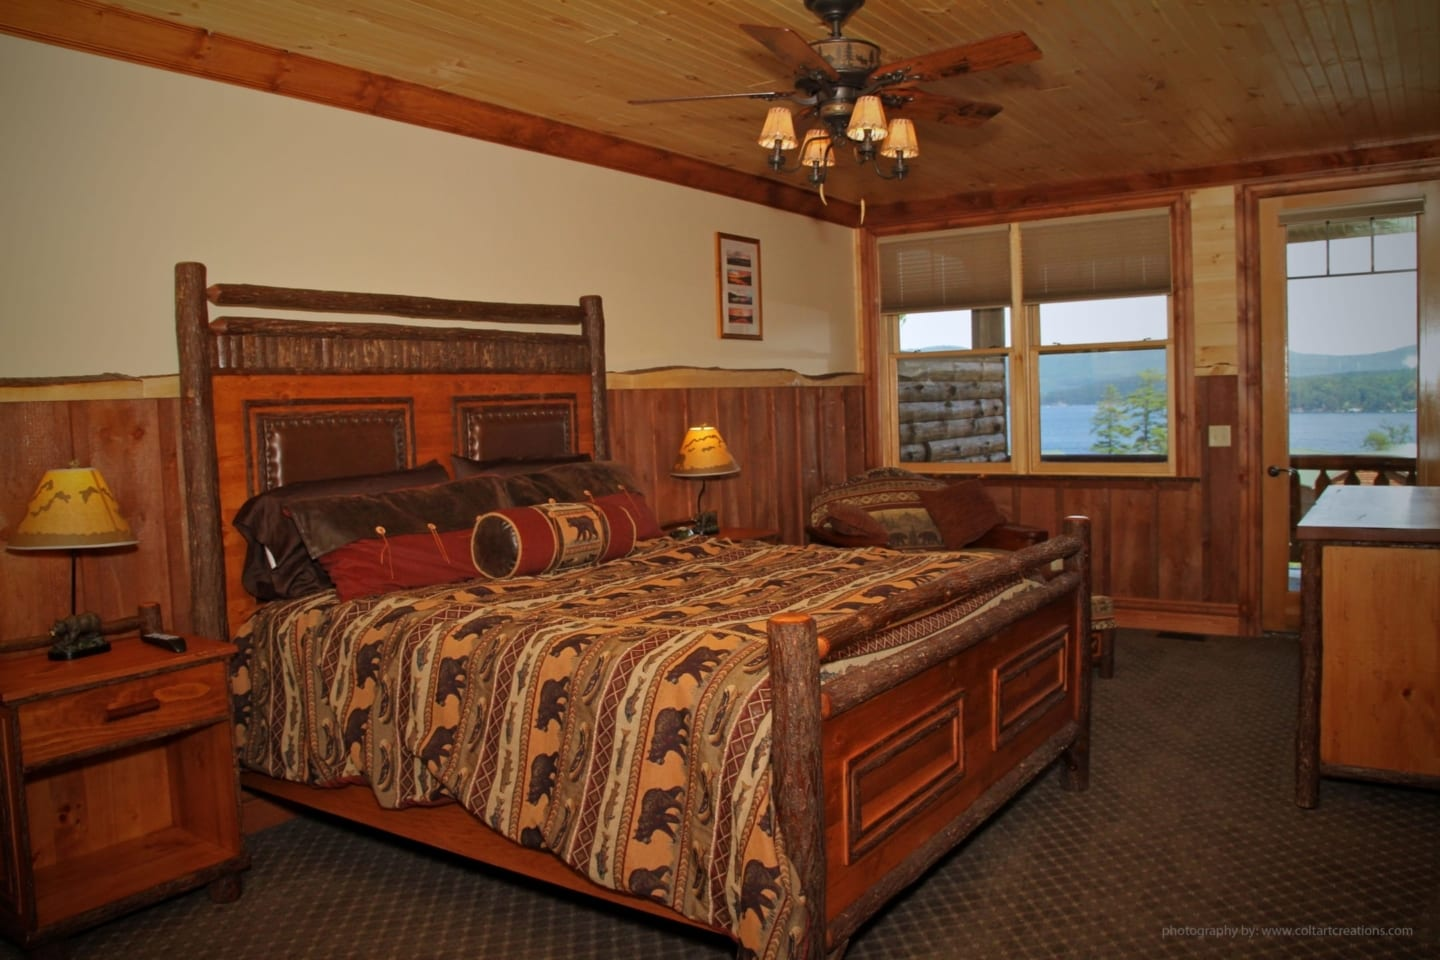 Bedroom in Oak Tree Lodge.